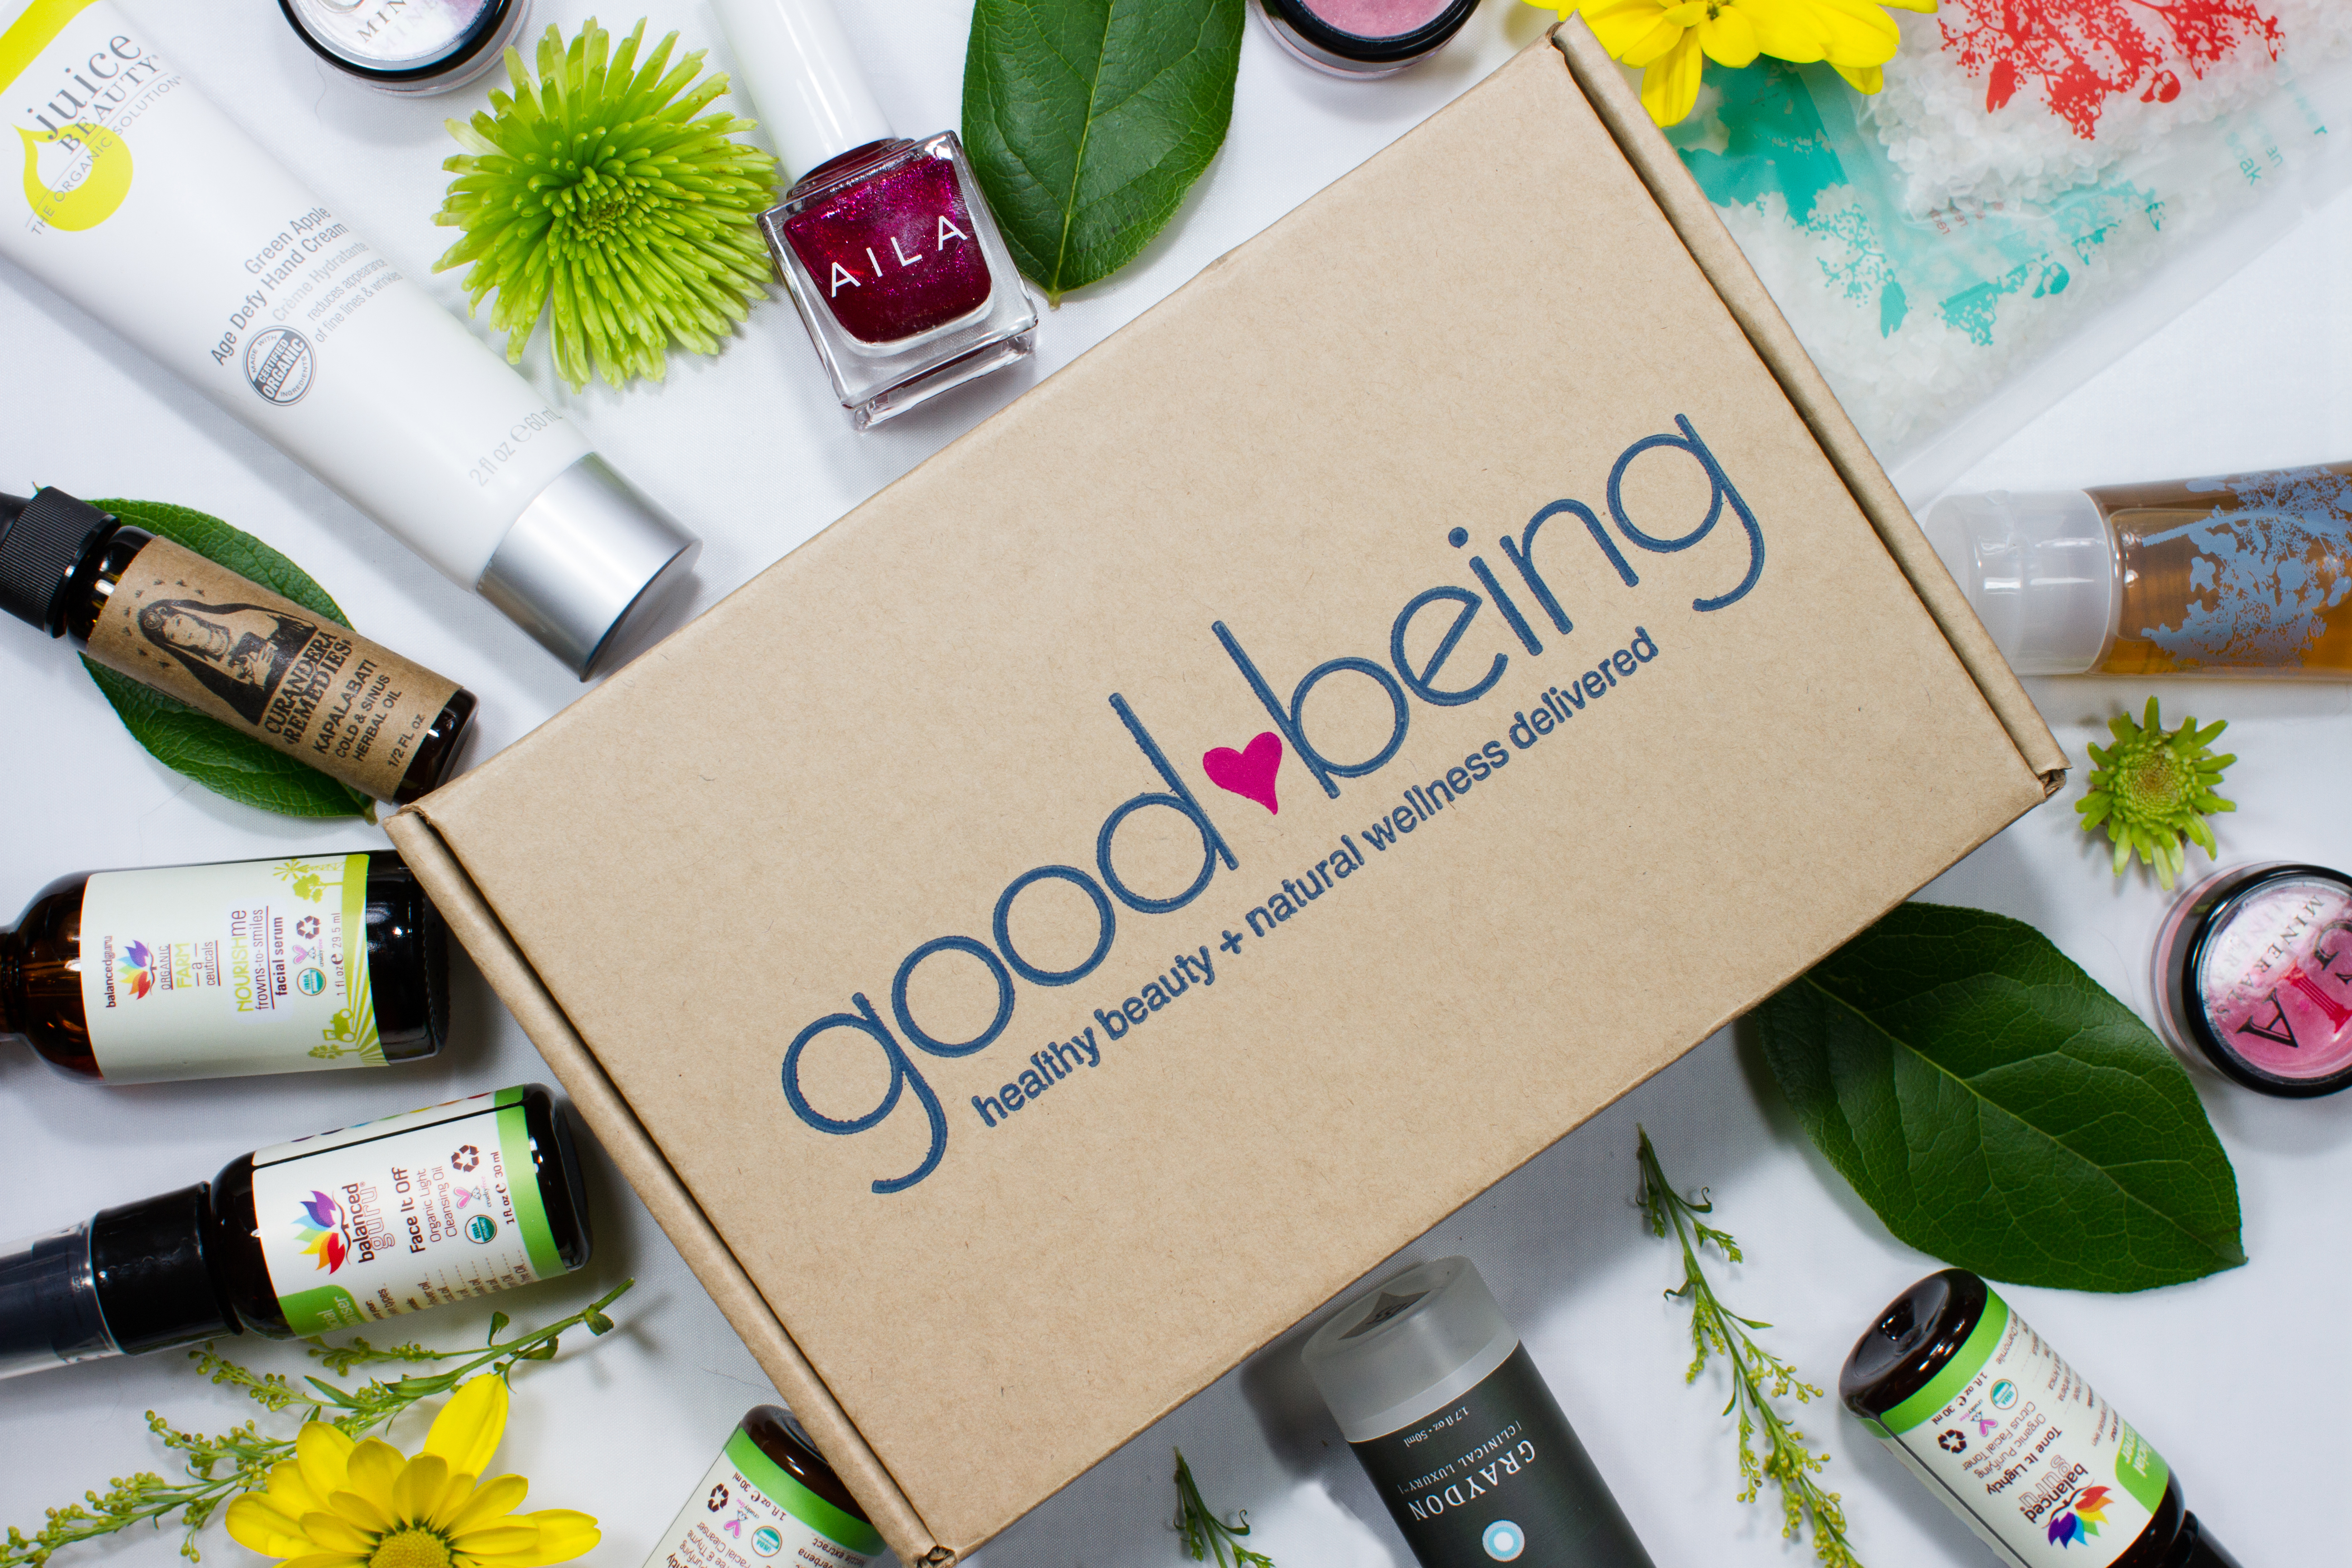 GoodBeing Natural Beauty Subscription Box - Want to know which natural beauty brands are effective, clean, eco-friendly, cruelty-free, vegan, and manufactured ethically? Click Through to Get Access to Your Official Guide to Green Beauty Brands You Can Trust!